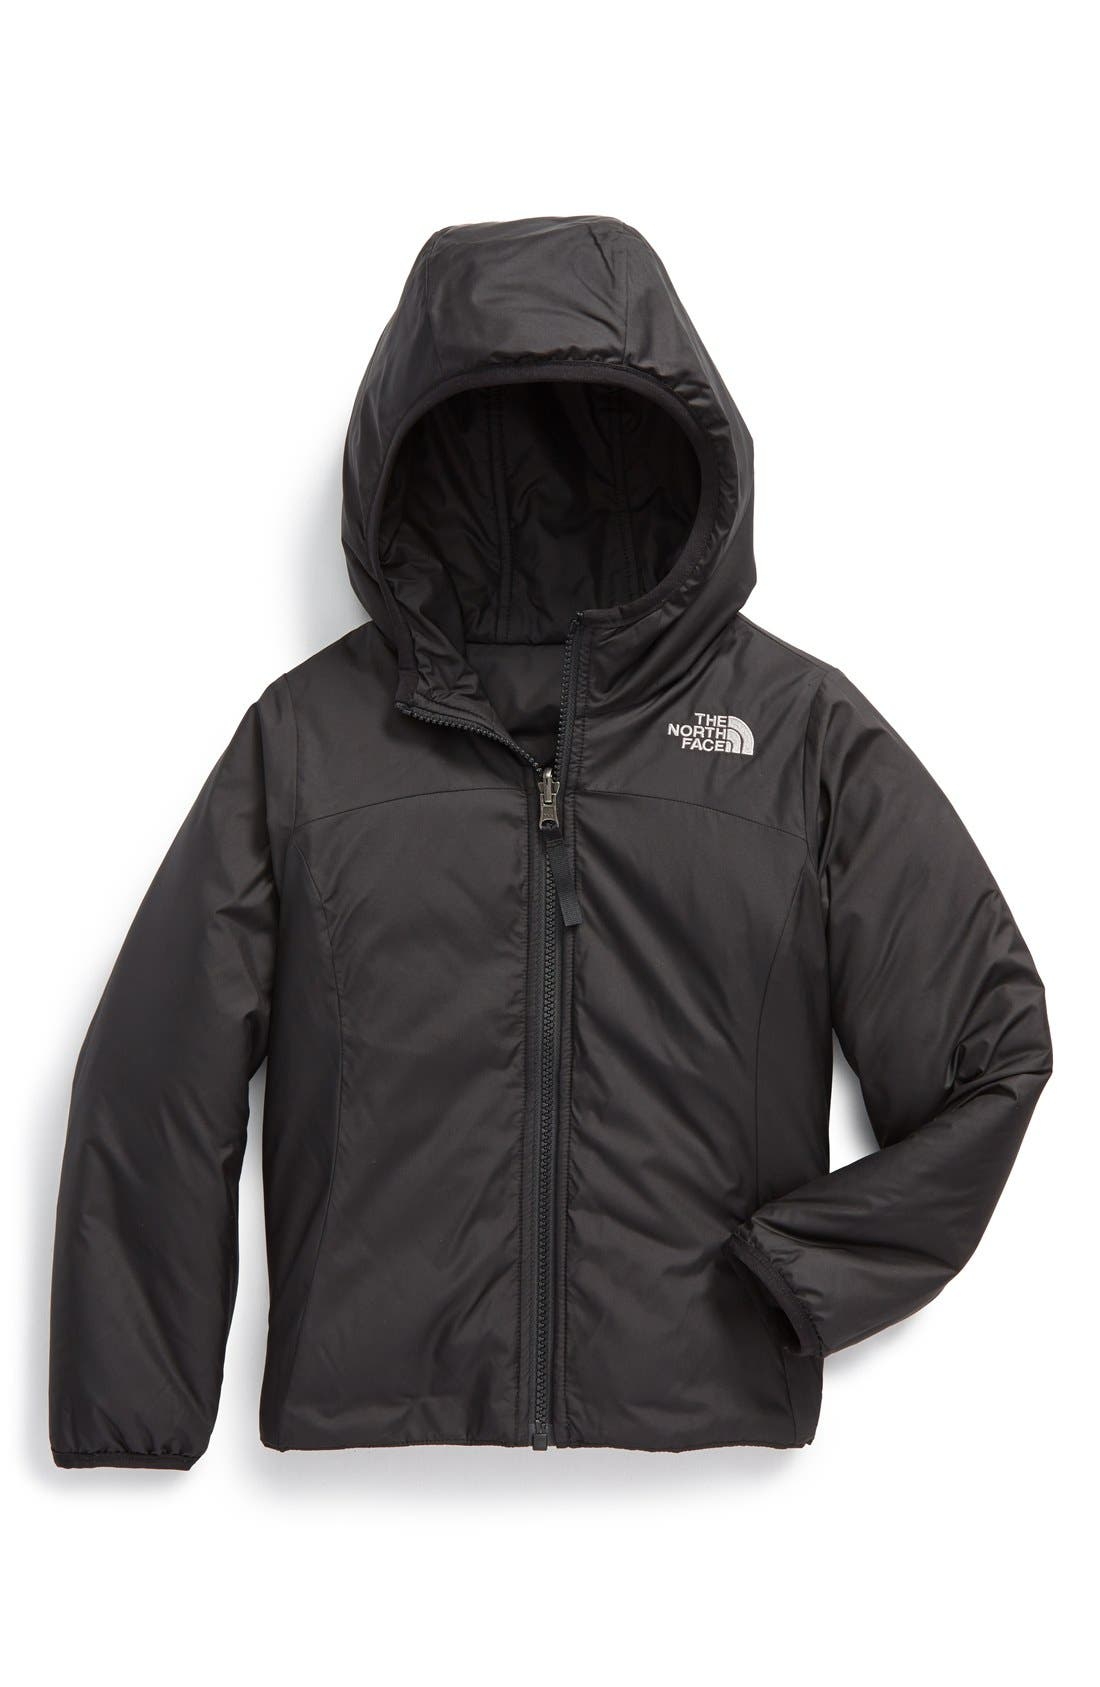 THE NORTH FACE,                             'Perseus' Water Repellent Heatseeker<sup>™</sup> Insulated Hooded Reversible Jacket,                             Alternate thumbnail 2, color,                             001